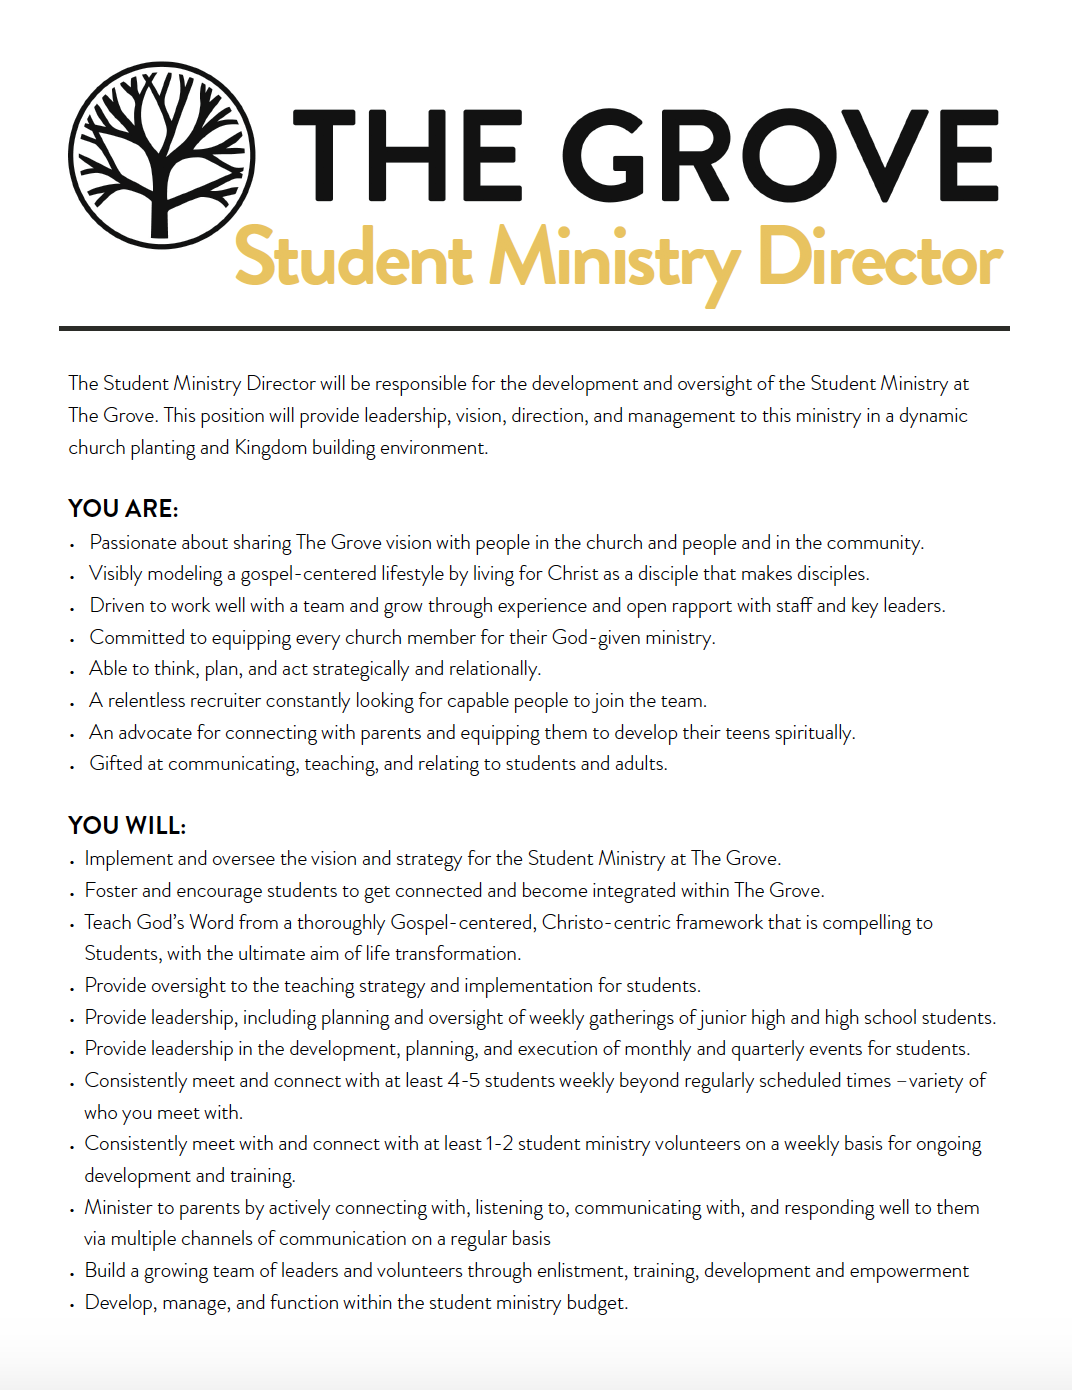 The Grove Student Ministry Director Job Description.png